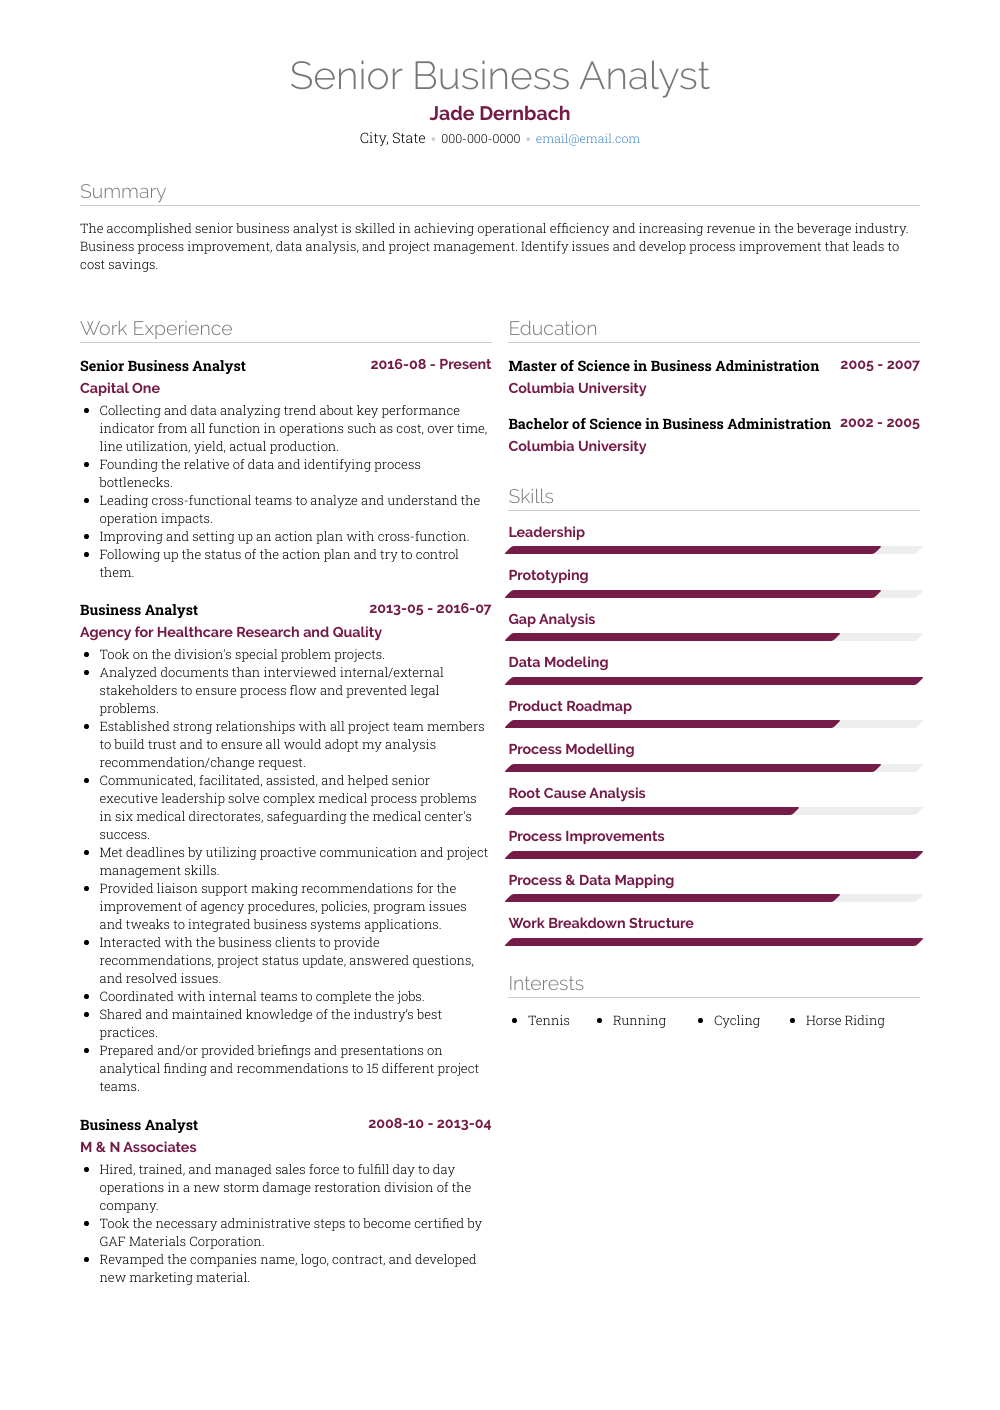 Senior Business Analyst Resume Sample and Template